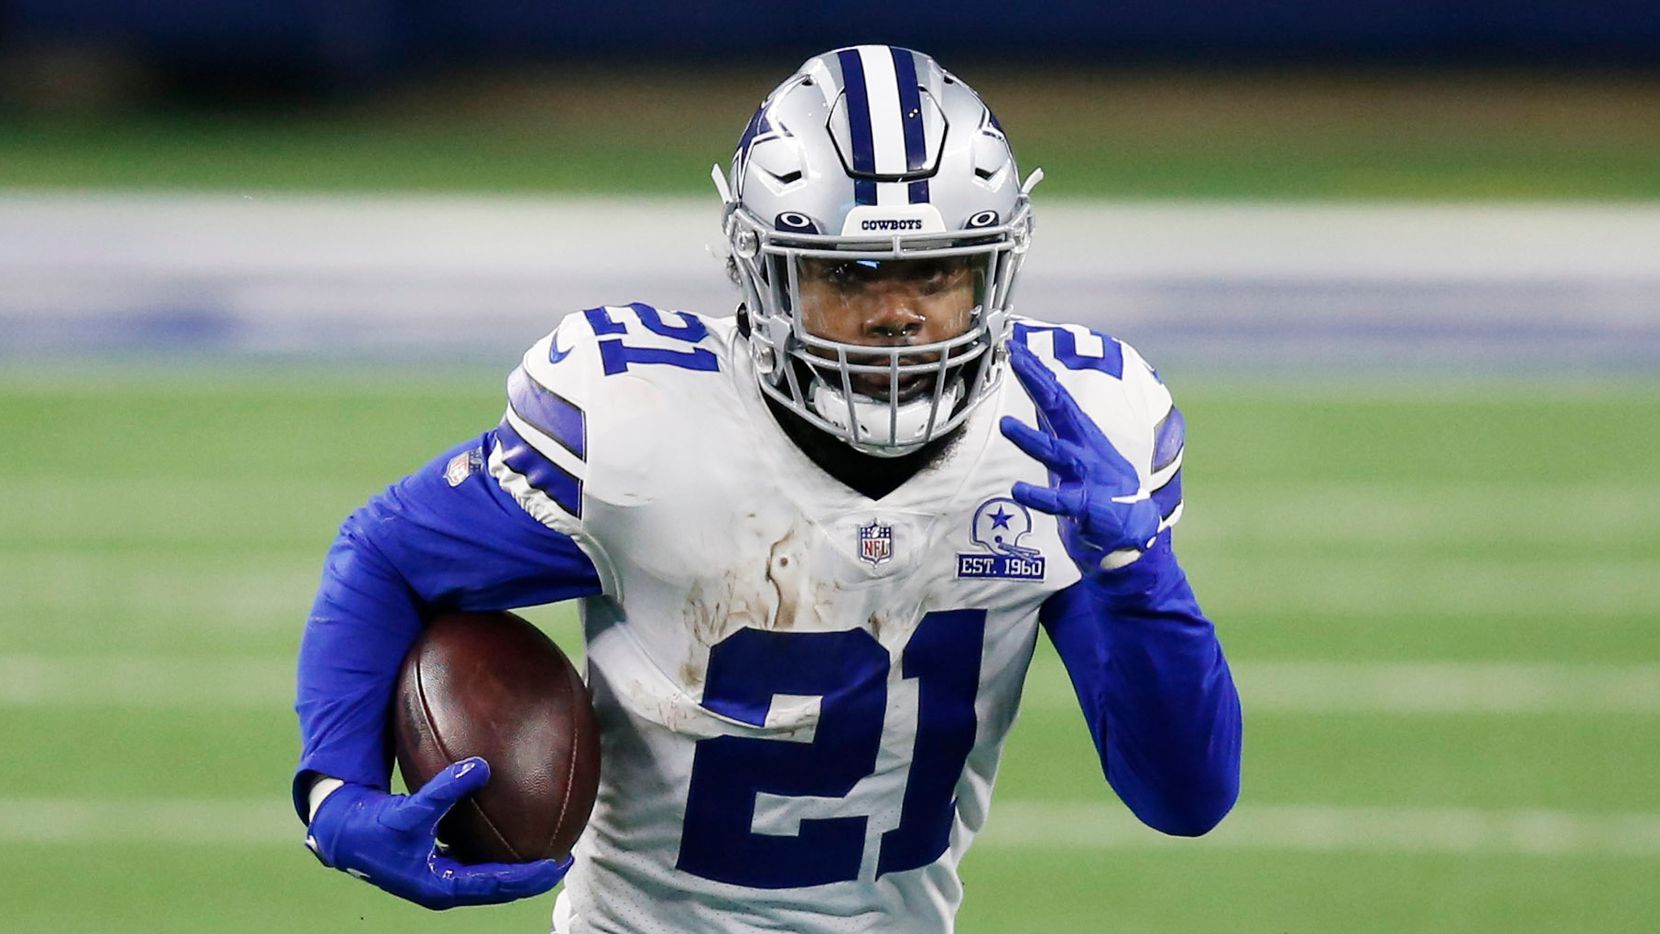 Cowboys RB Ezekiel Elliott may seem in decline, but it isn't hard to see  the avalanche of obstacles slowing him down